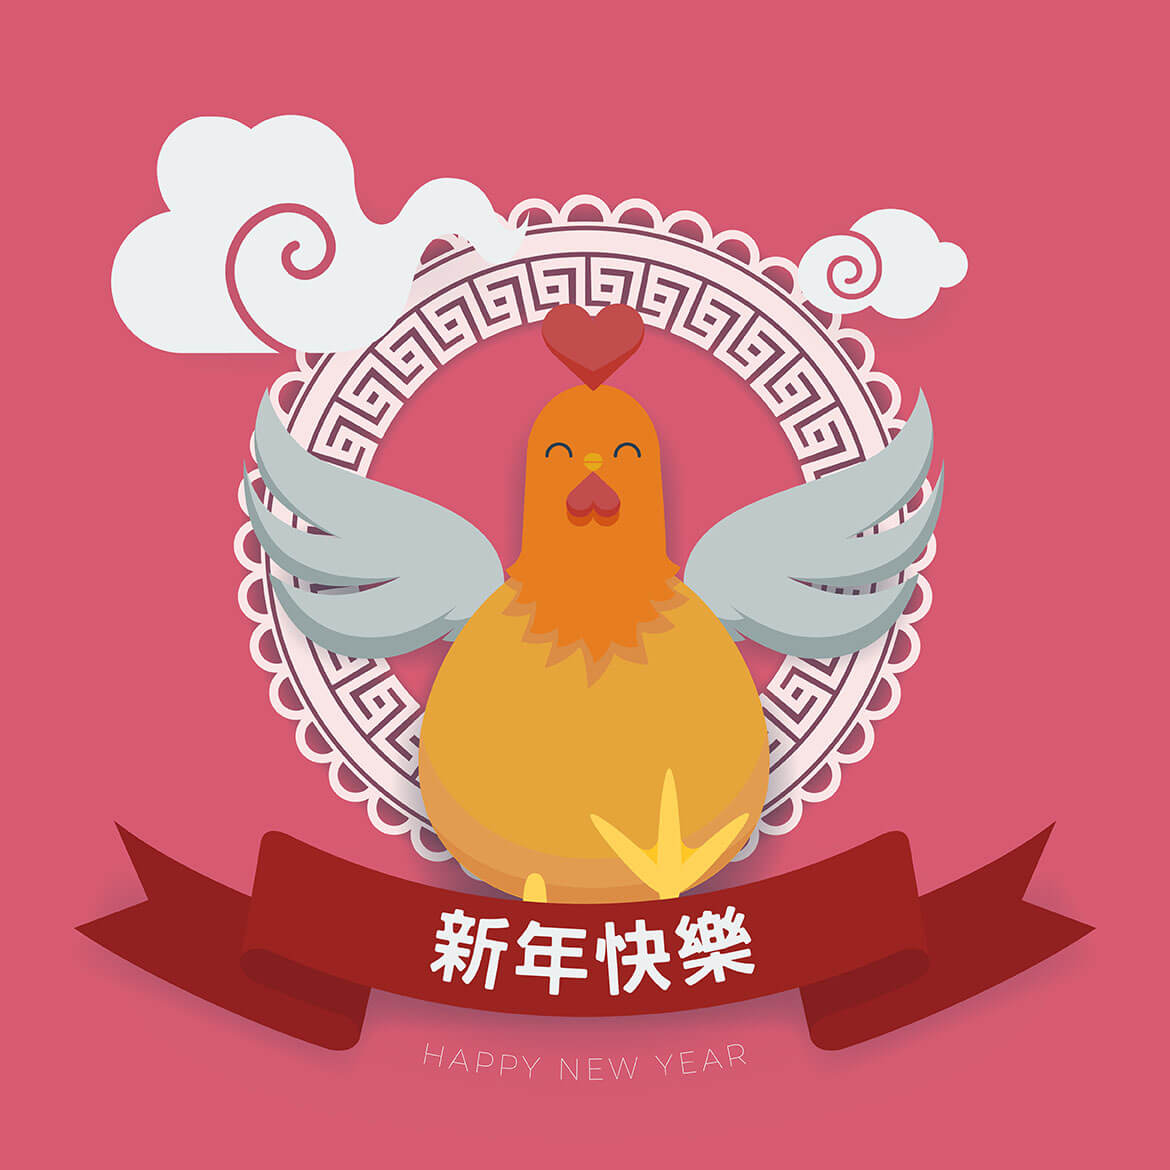 square version of chinese new year themed banner featuring a rooster